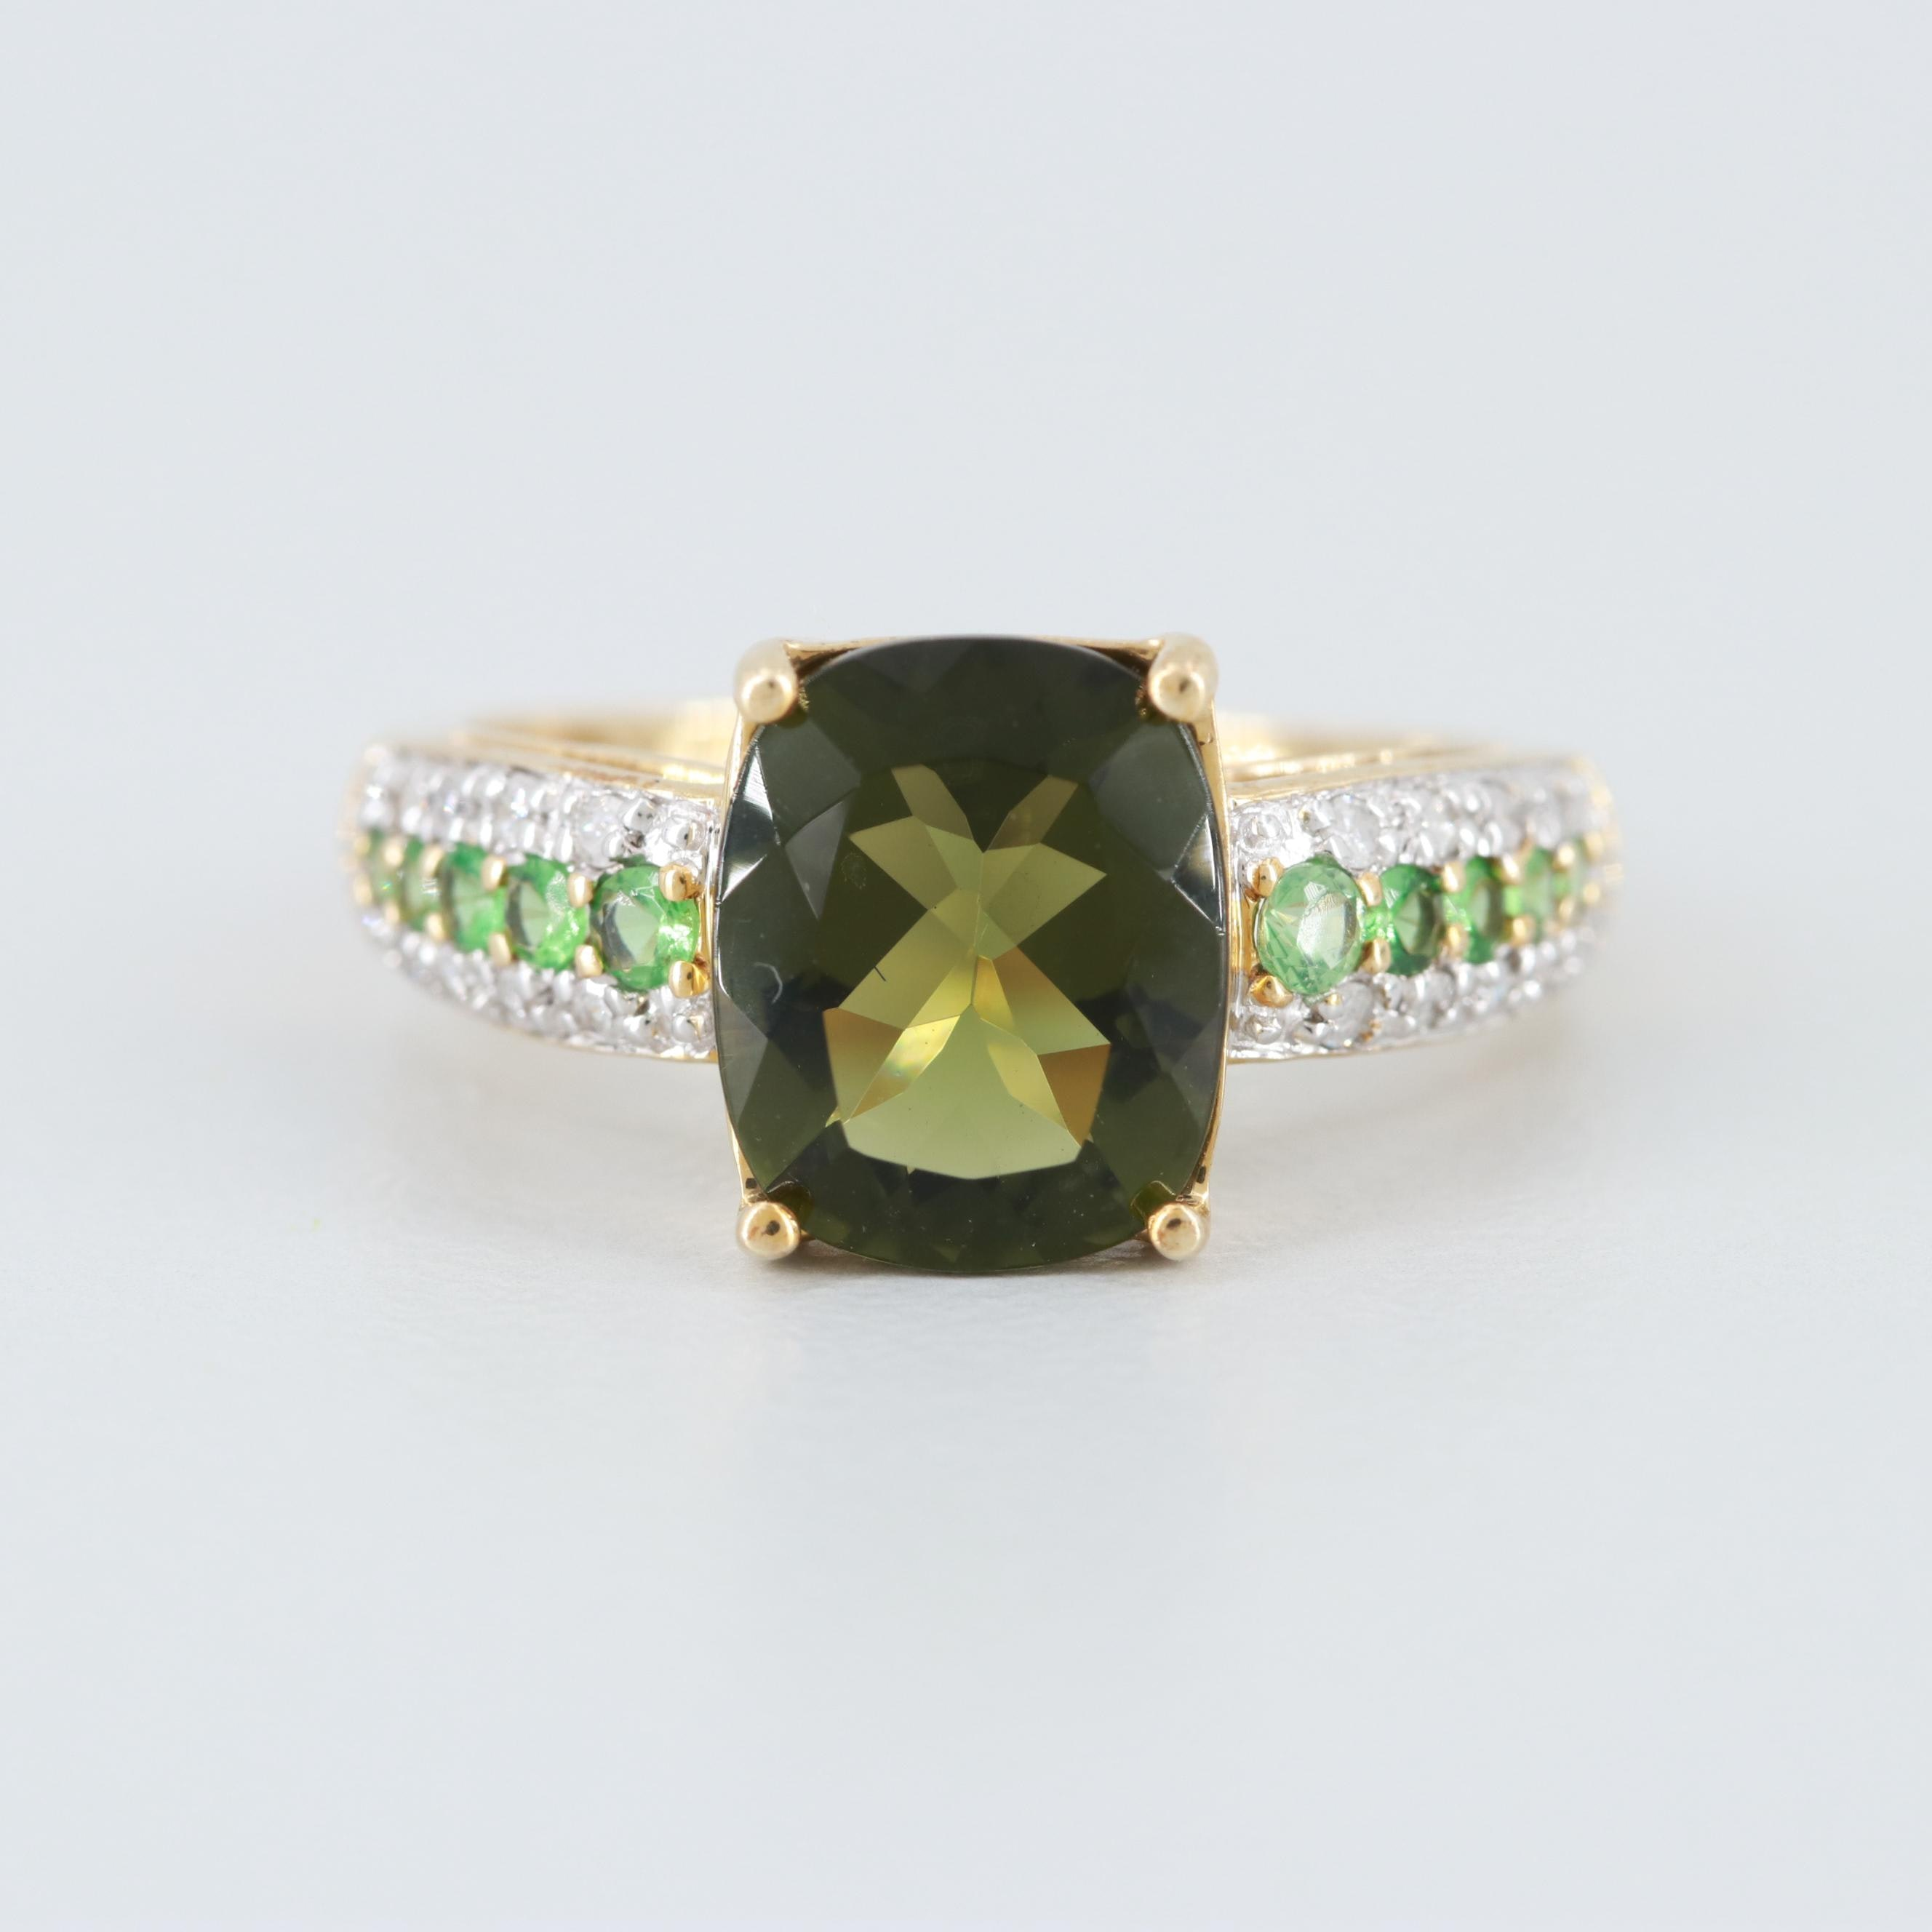 10K Yellow Gold Moldavite, Chrome Diopside and Diamond Ring